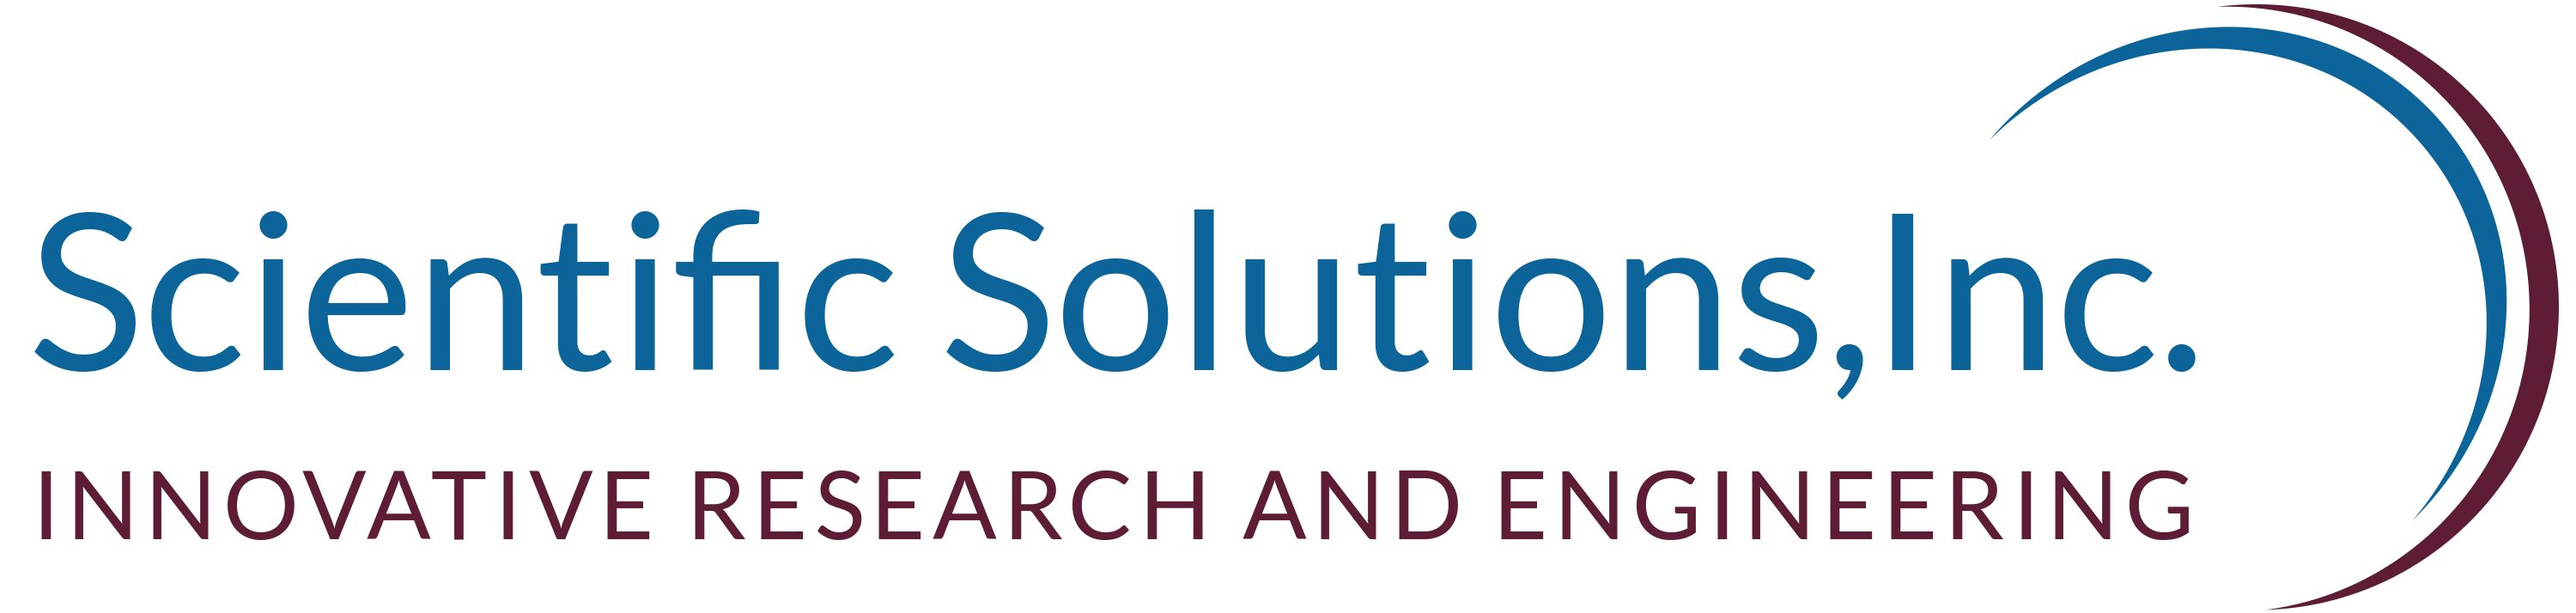 Scientific Solutions Inc.